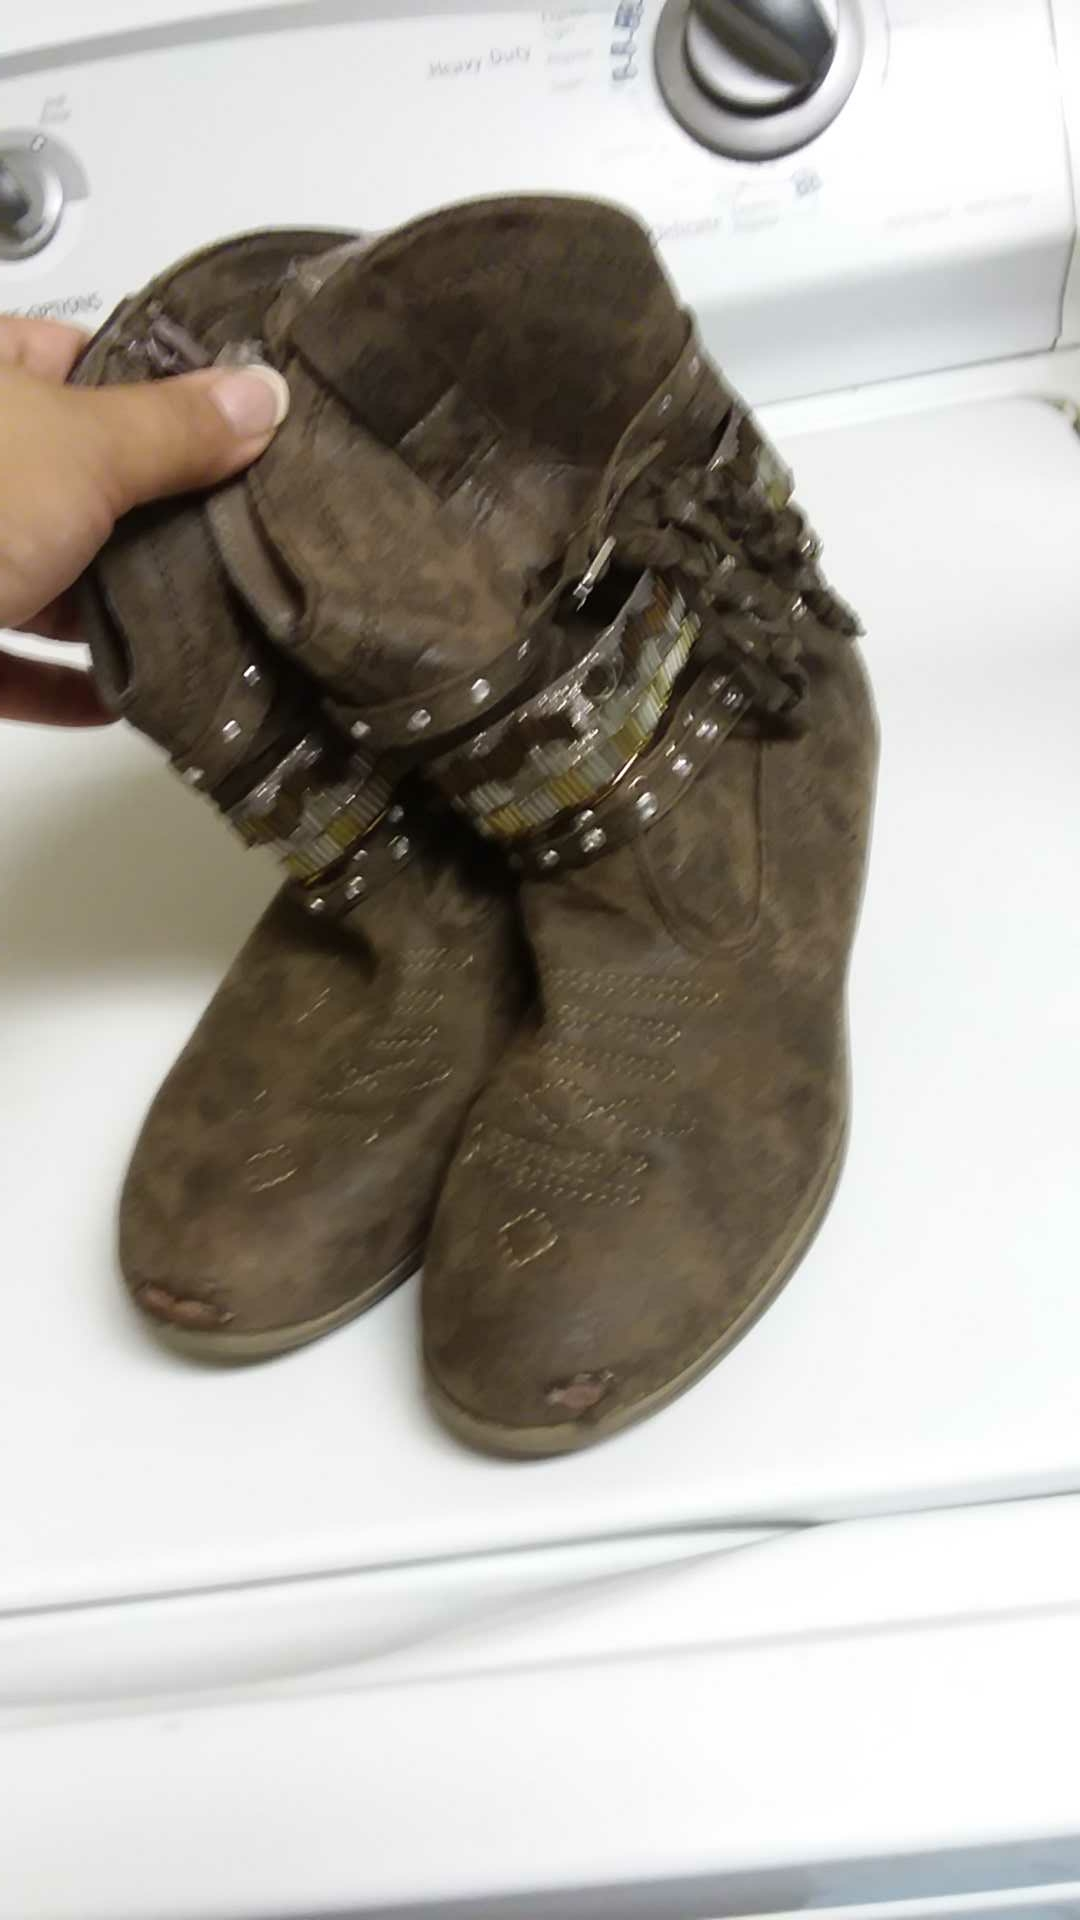 Justice girls boots SZ 4. Front peeling